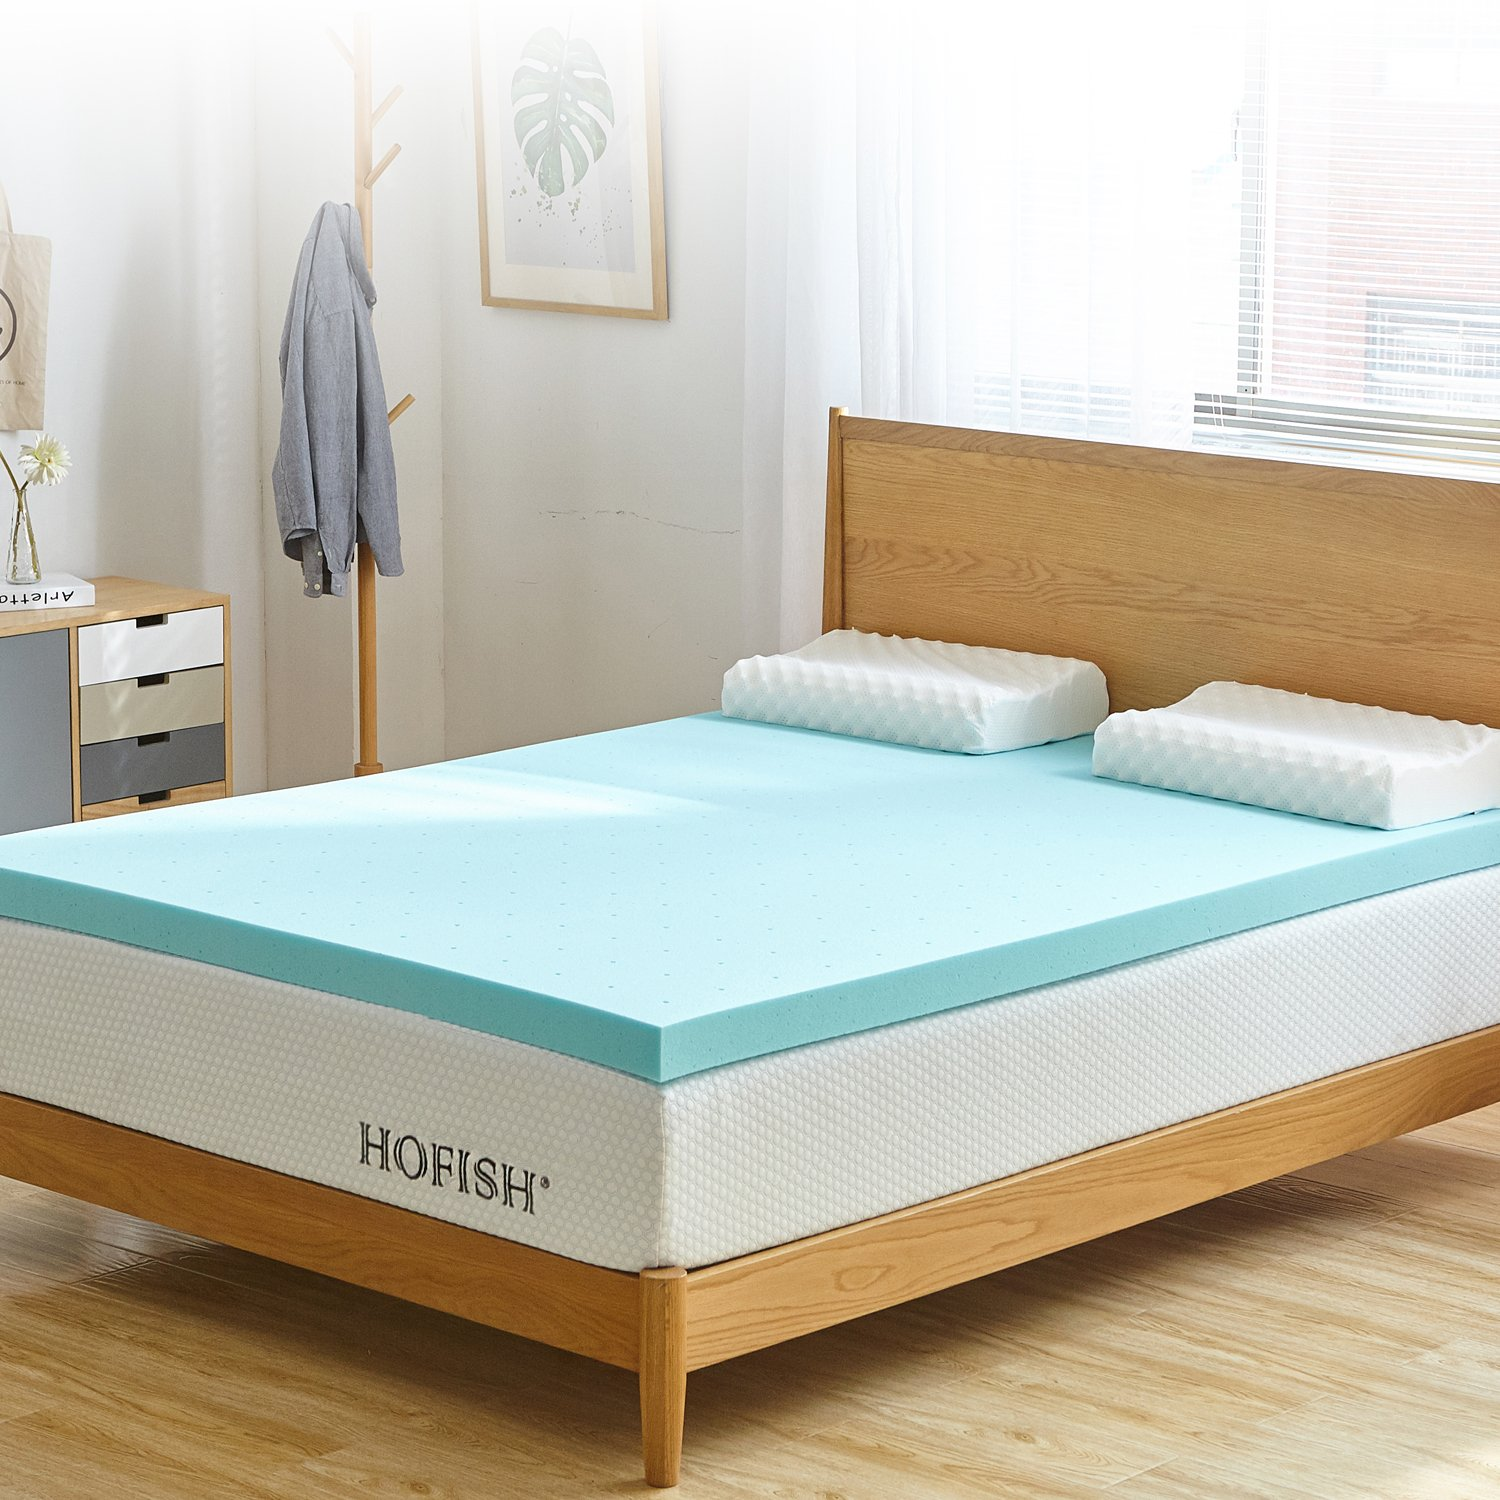 HOFISH Best Mattress Topper Review by www.snoremagazine.com